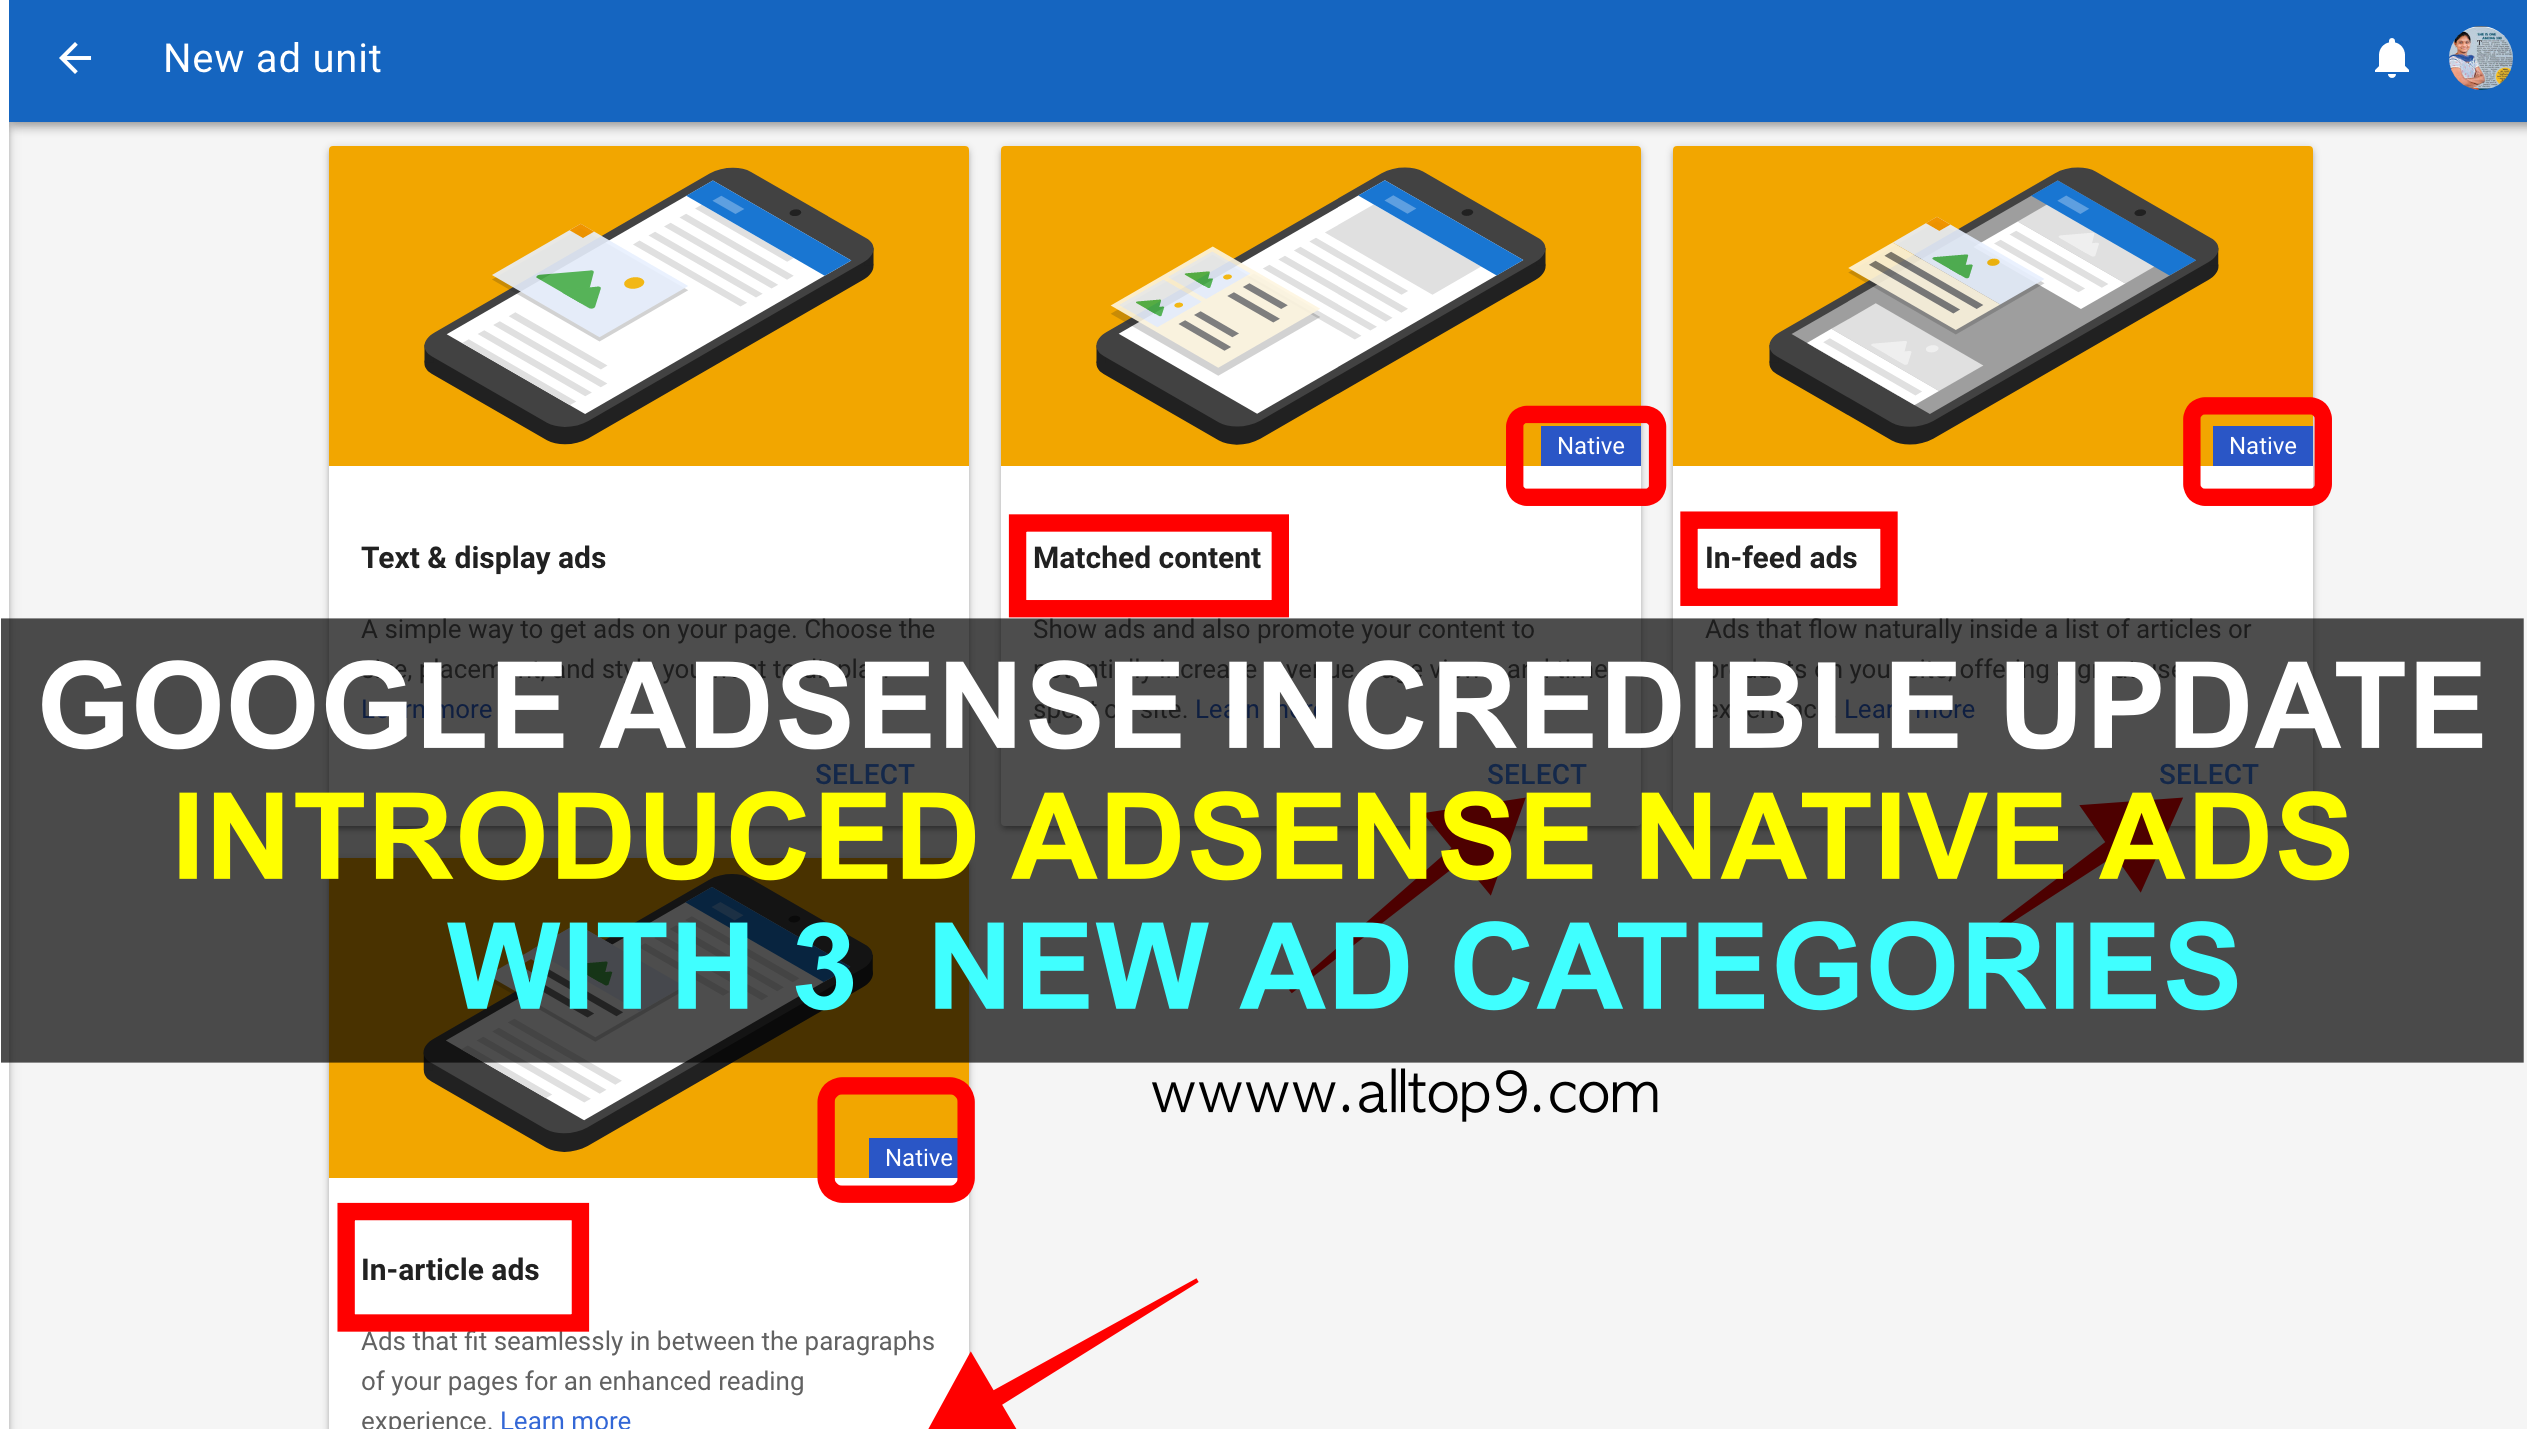 google-adsense-incredible-update-introducing-adsense-native-ads-infeed-inarticle-matchedcontent-ad-categories